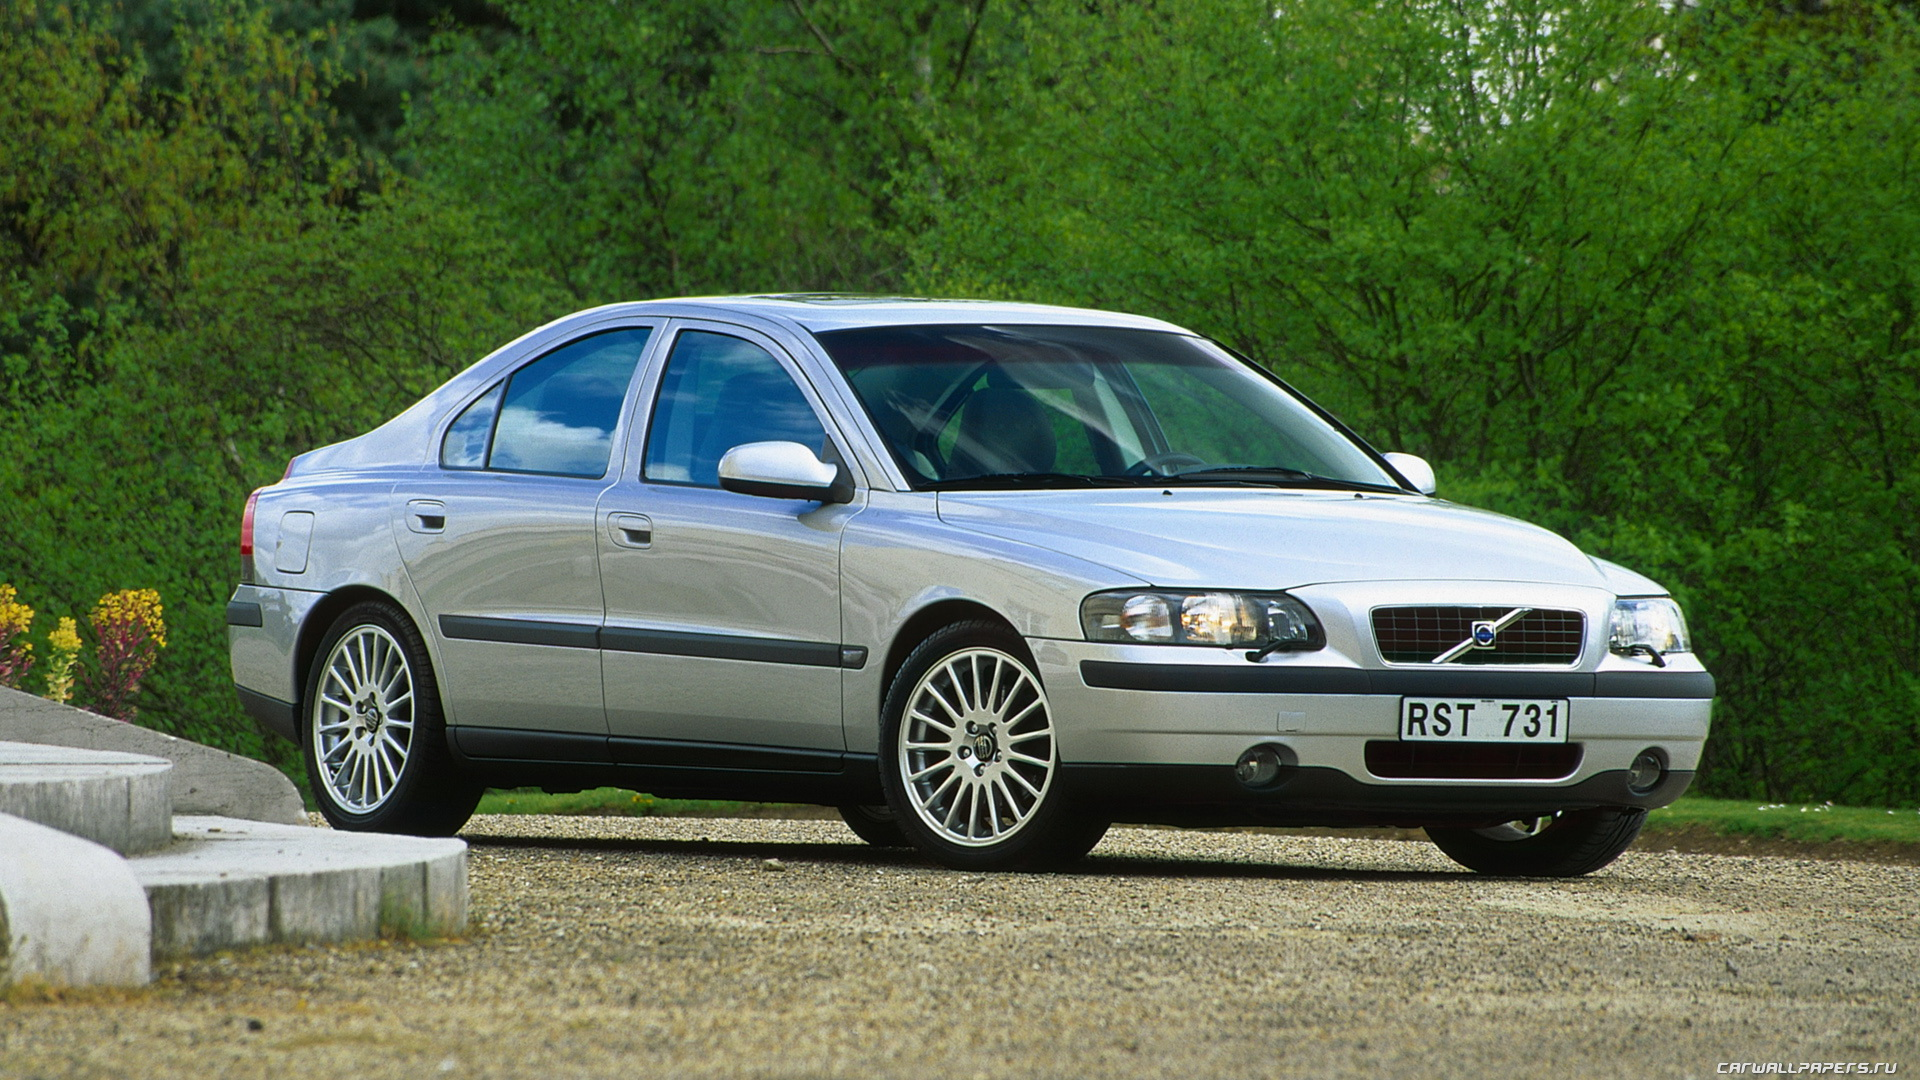 2002 Volvo S60 Photos, Informations, Articles - BestCarMag.com